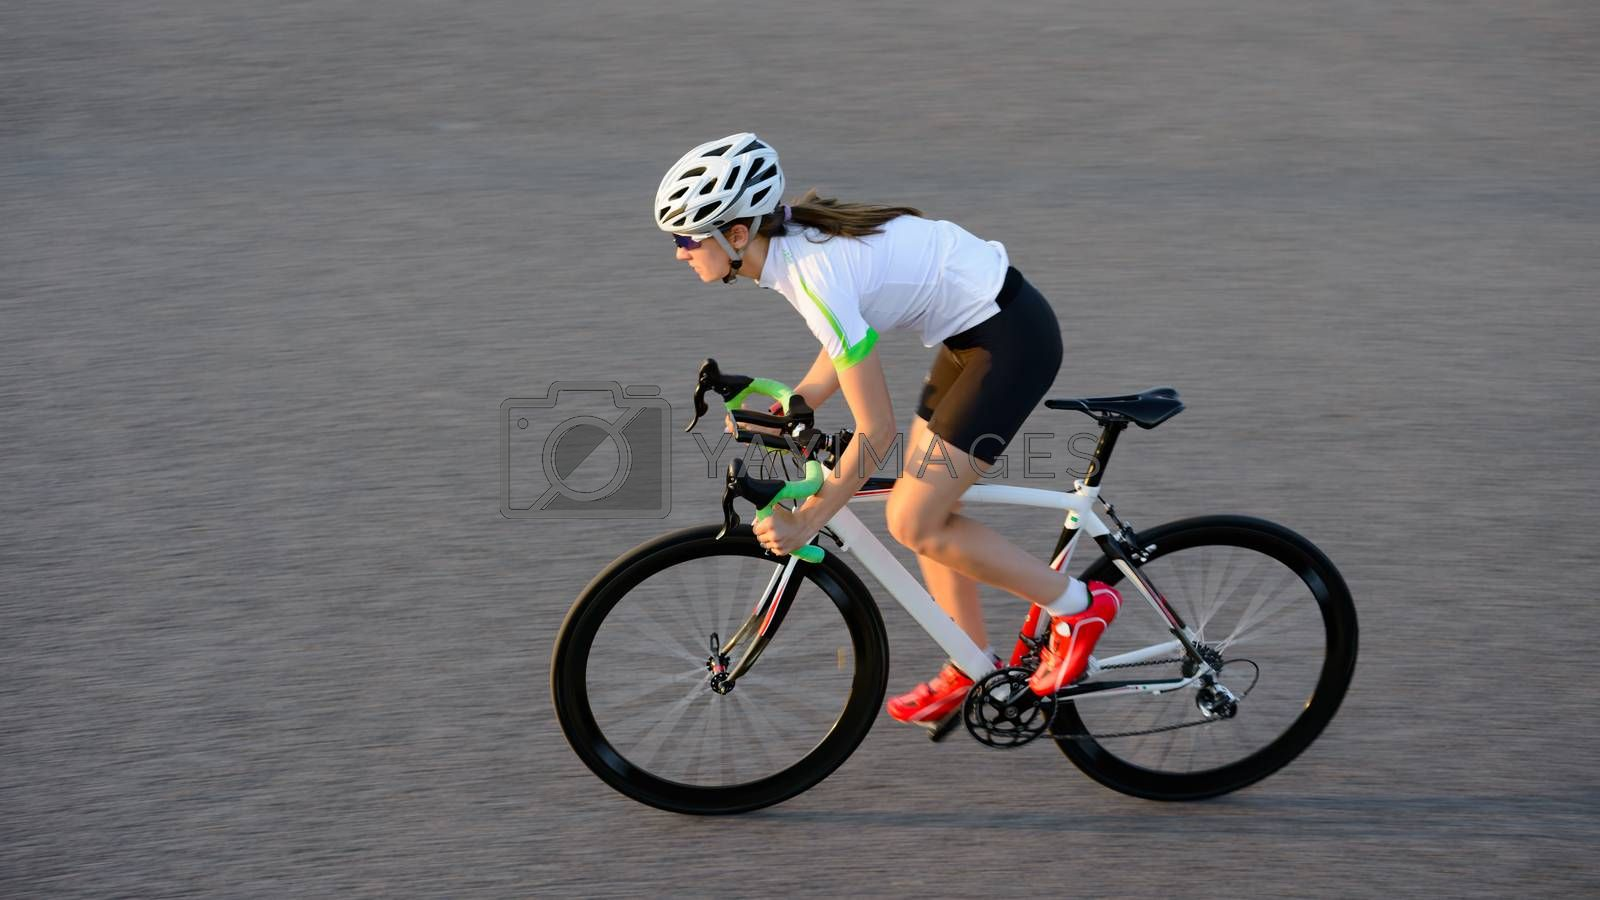 Young Woman Cyclist Riding Road Bicycle on the Free Street in the City at Summer Sunset. Healthy Lifestyle and Urban Sport Concept.